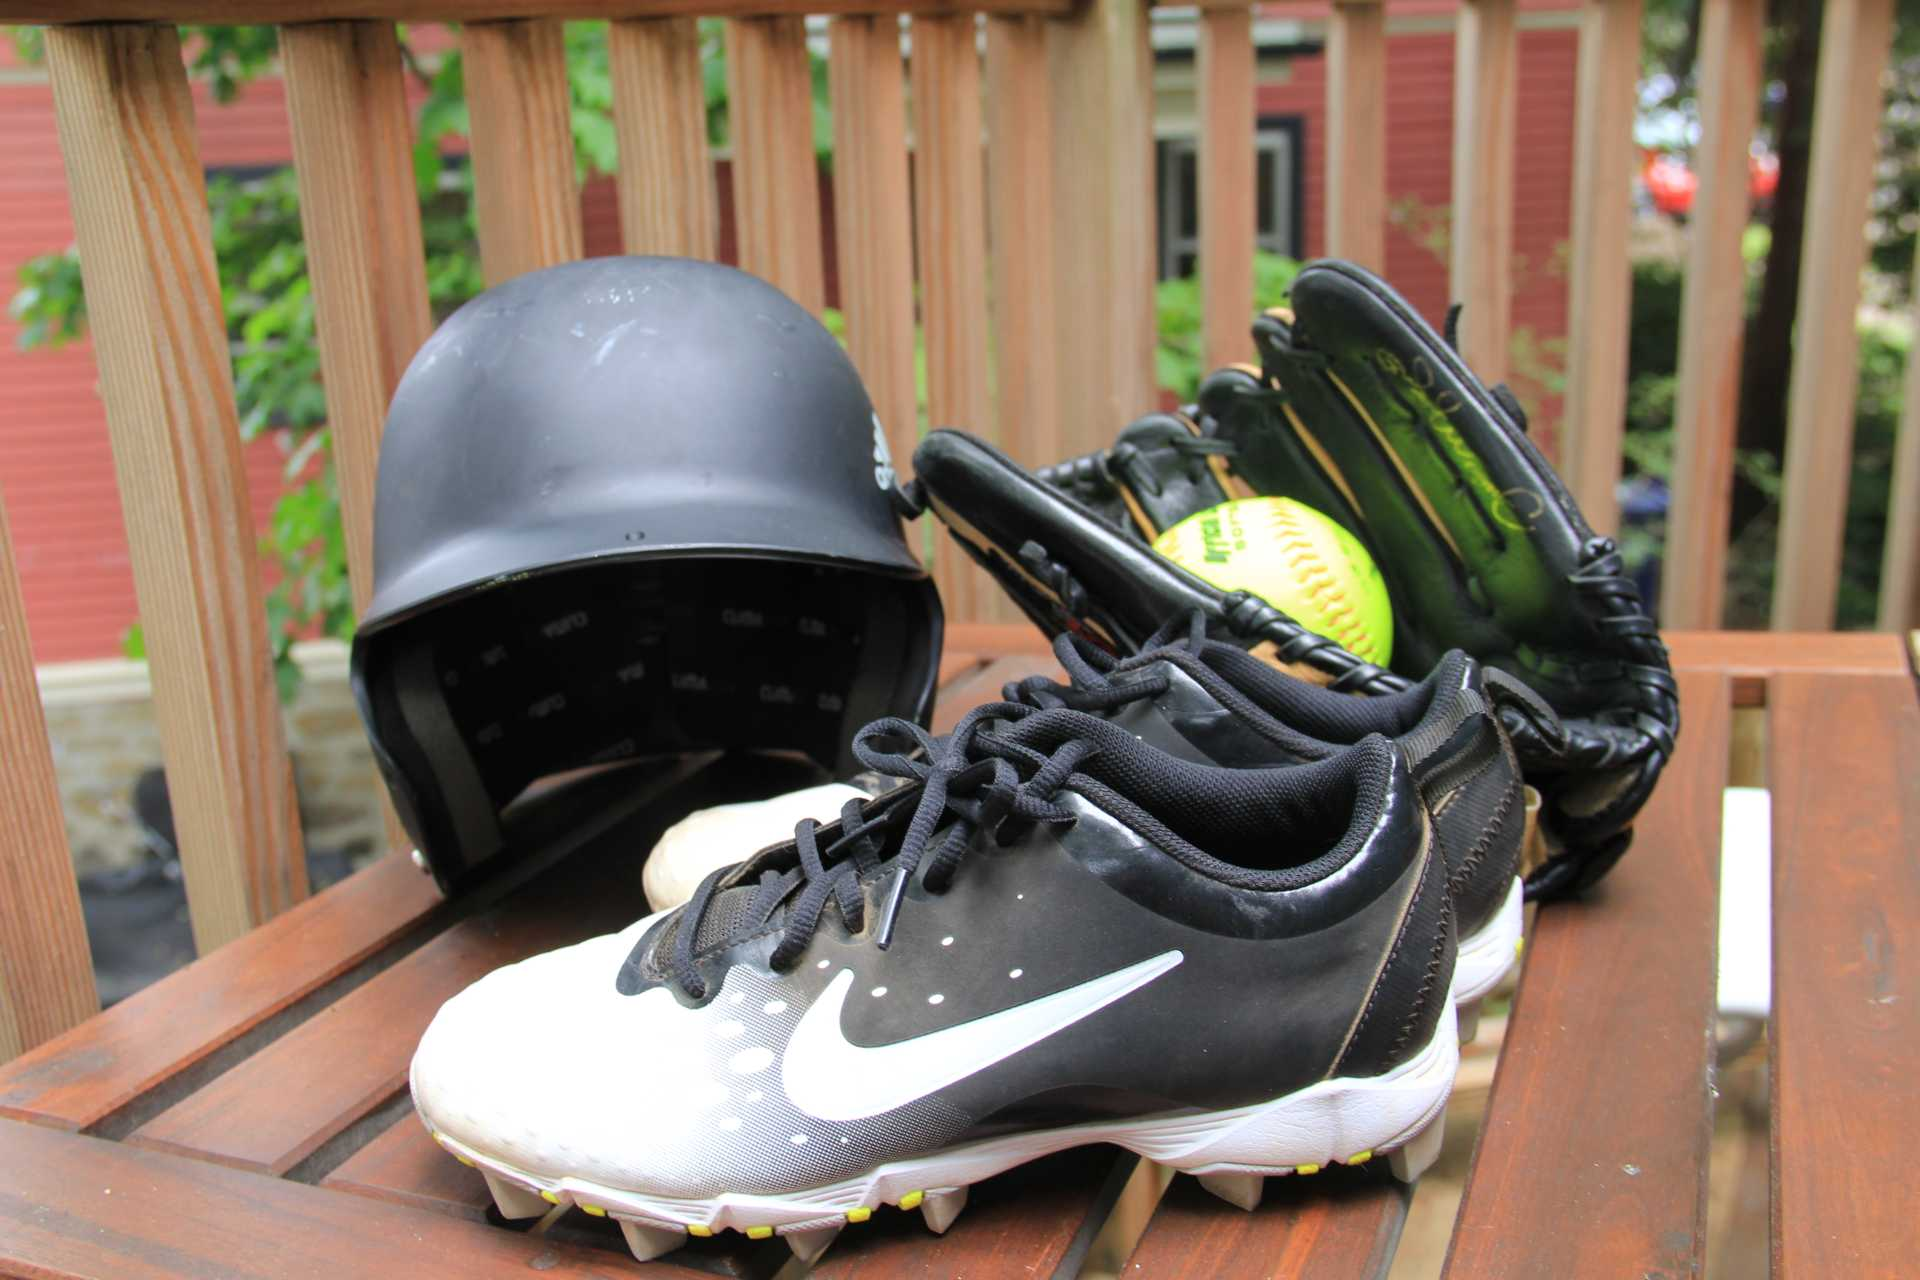 A softball helmet, glove with a softball in it, and one cleat. Photo courtesy of Lauren Johnson.